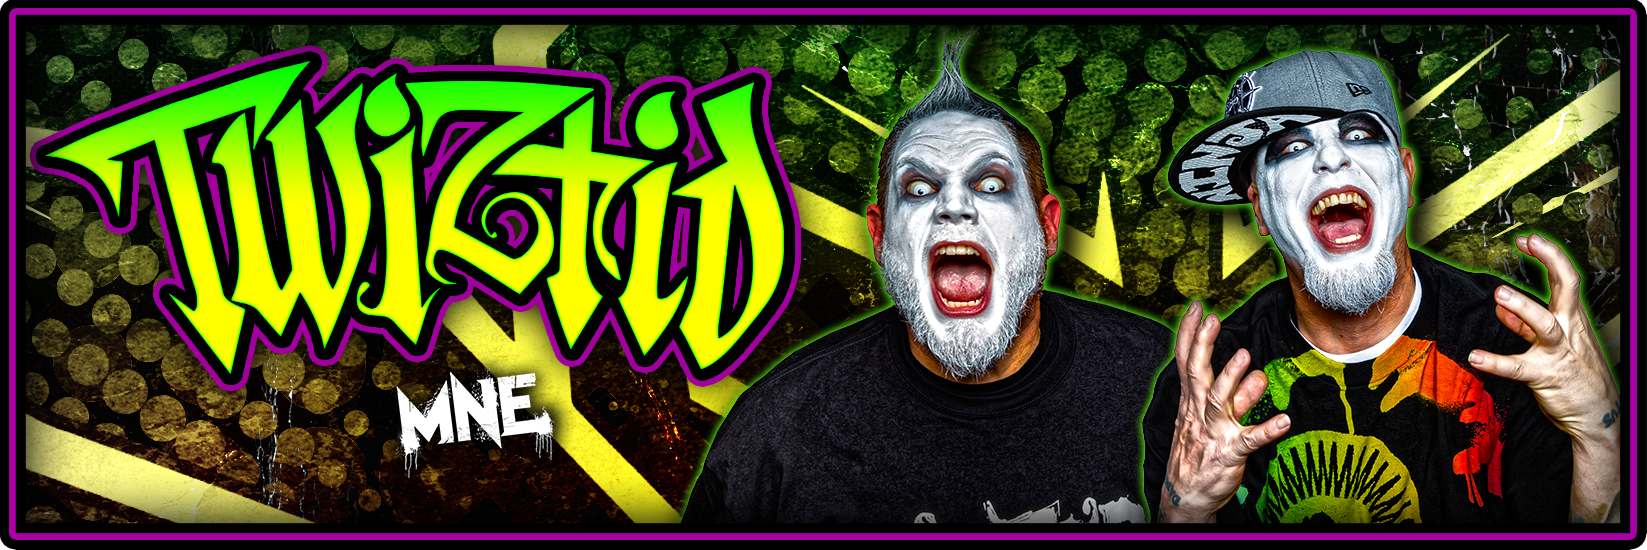 Astronomicon 3 Twiztid  Banner.png